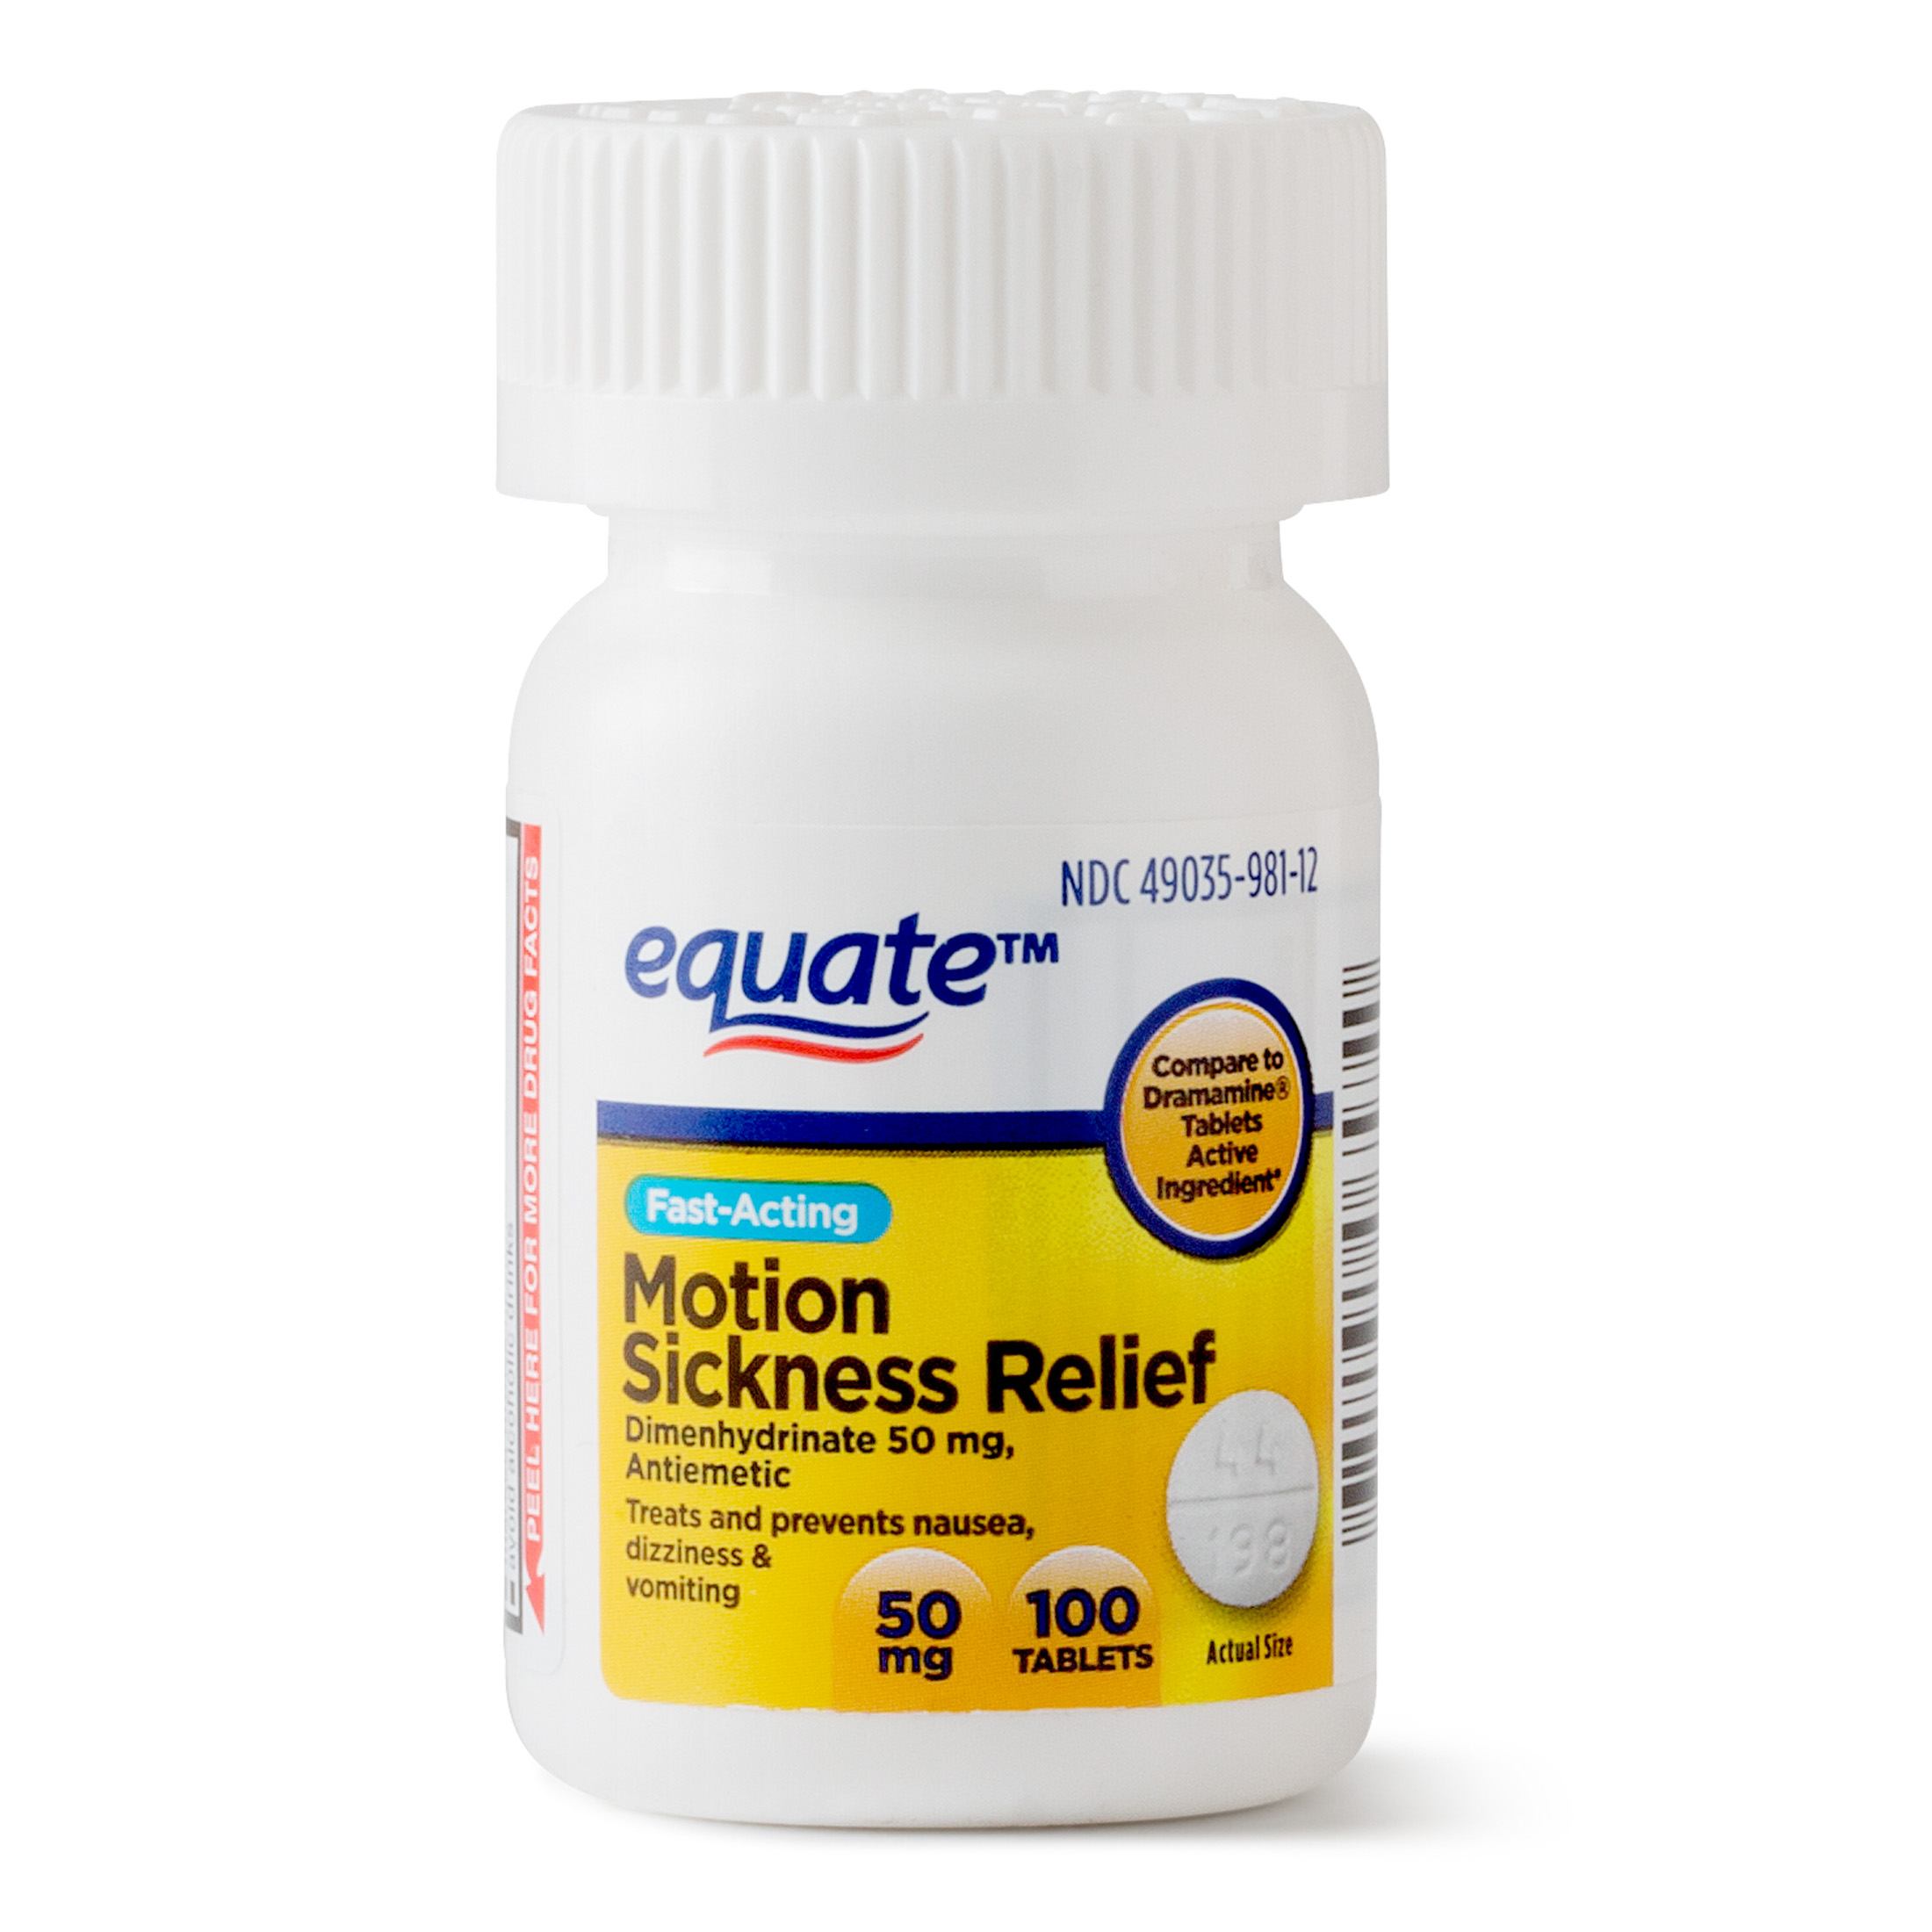 Equate Fast Acting Motion Sickness Relief Dimenhydrinate Tablets, 50 mg, 100 Ct